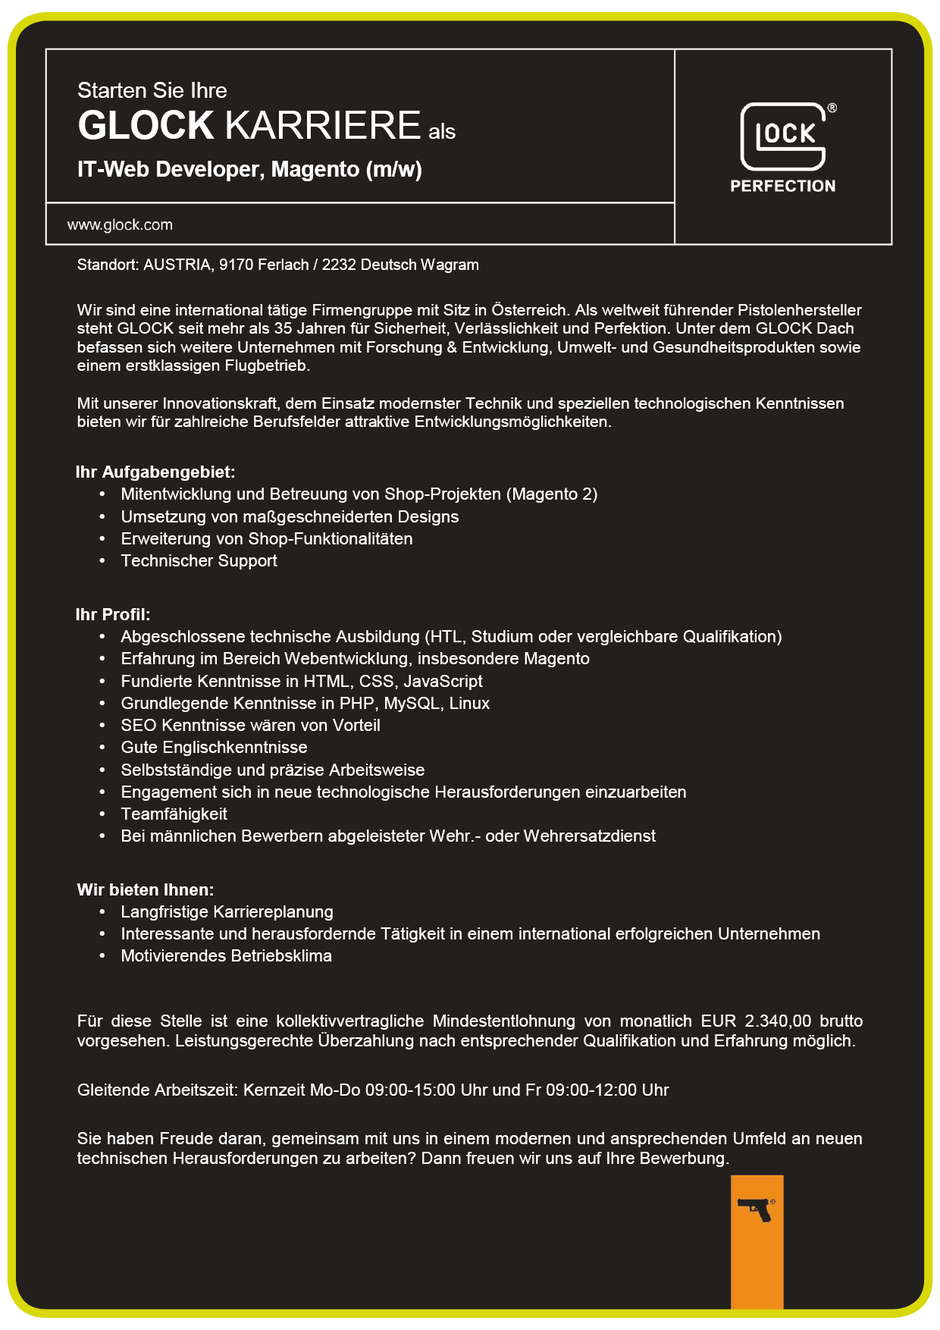 Software Developer Jobs - IT-Web Developer Magento - Glock GesmbH - 2 - Deutsch Wagram - Niederösterreich